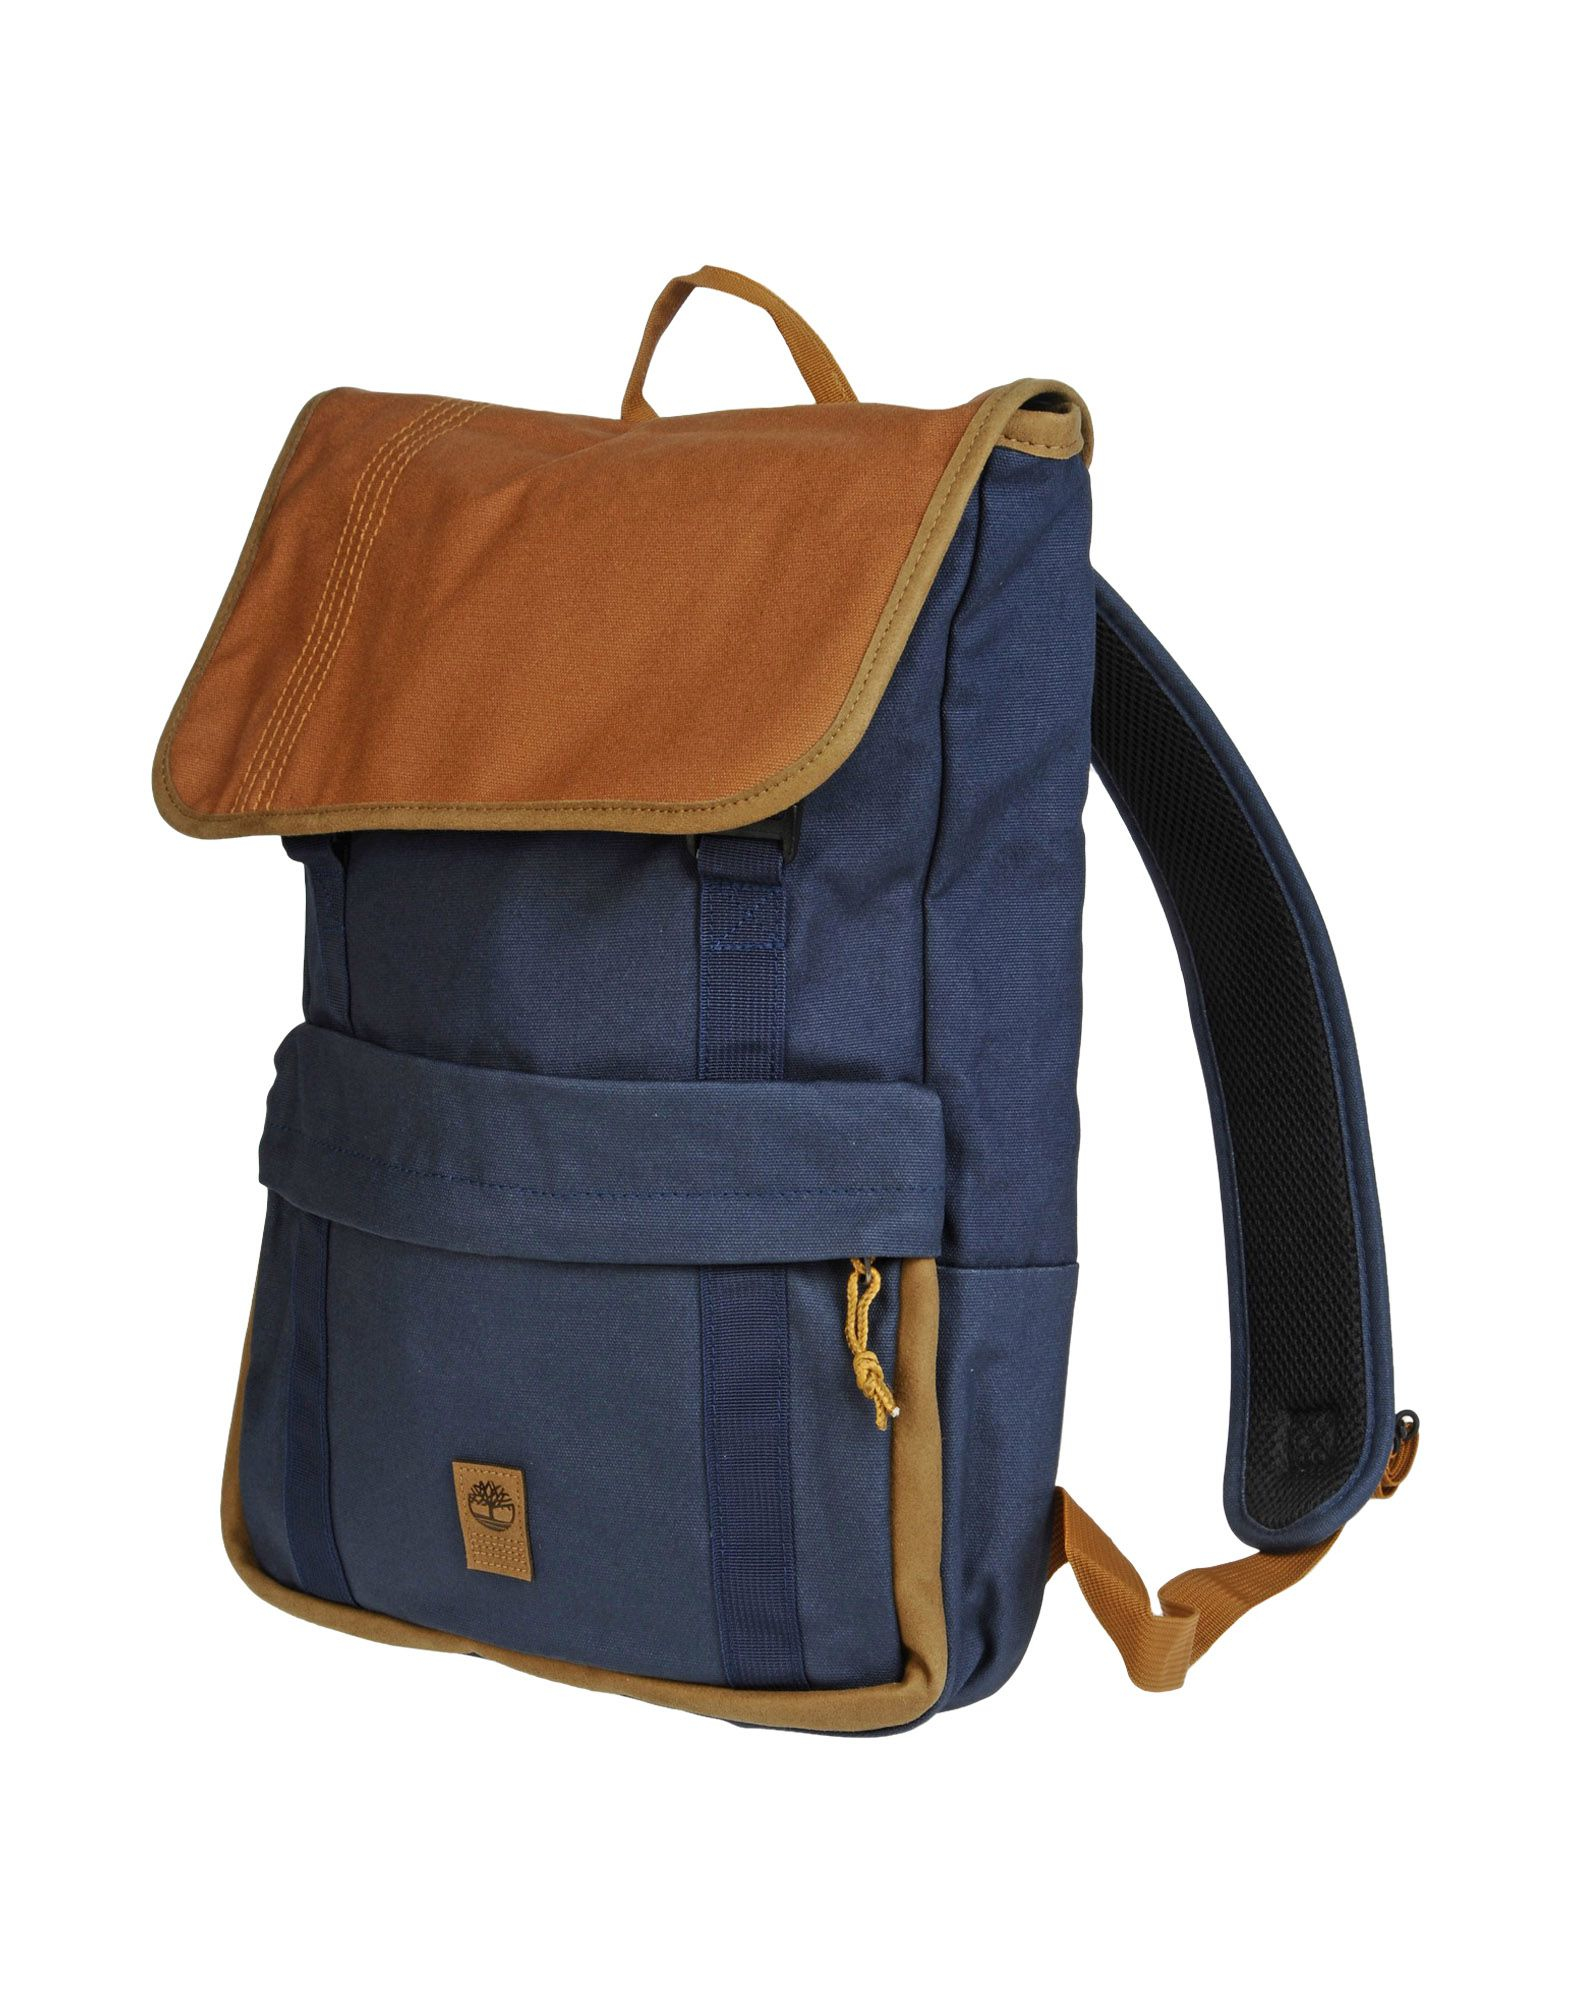 d8741f08bce Timberland Rucksacks & Bumbags in Blue for Men - Lyst